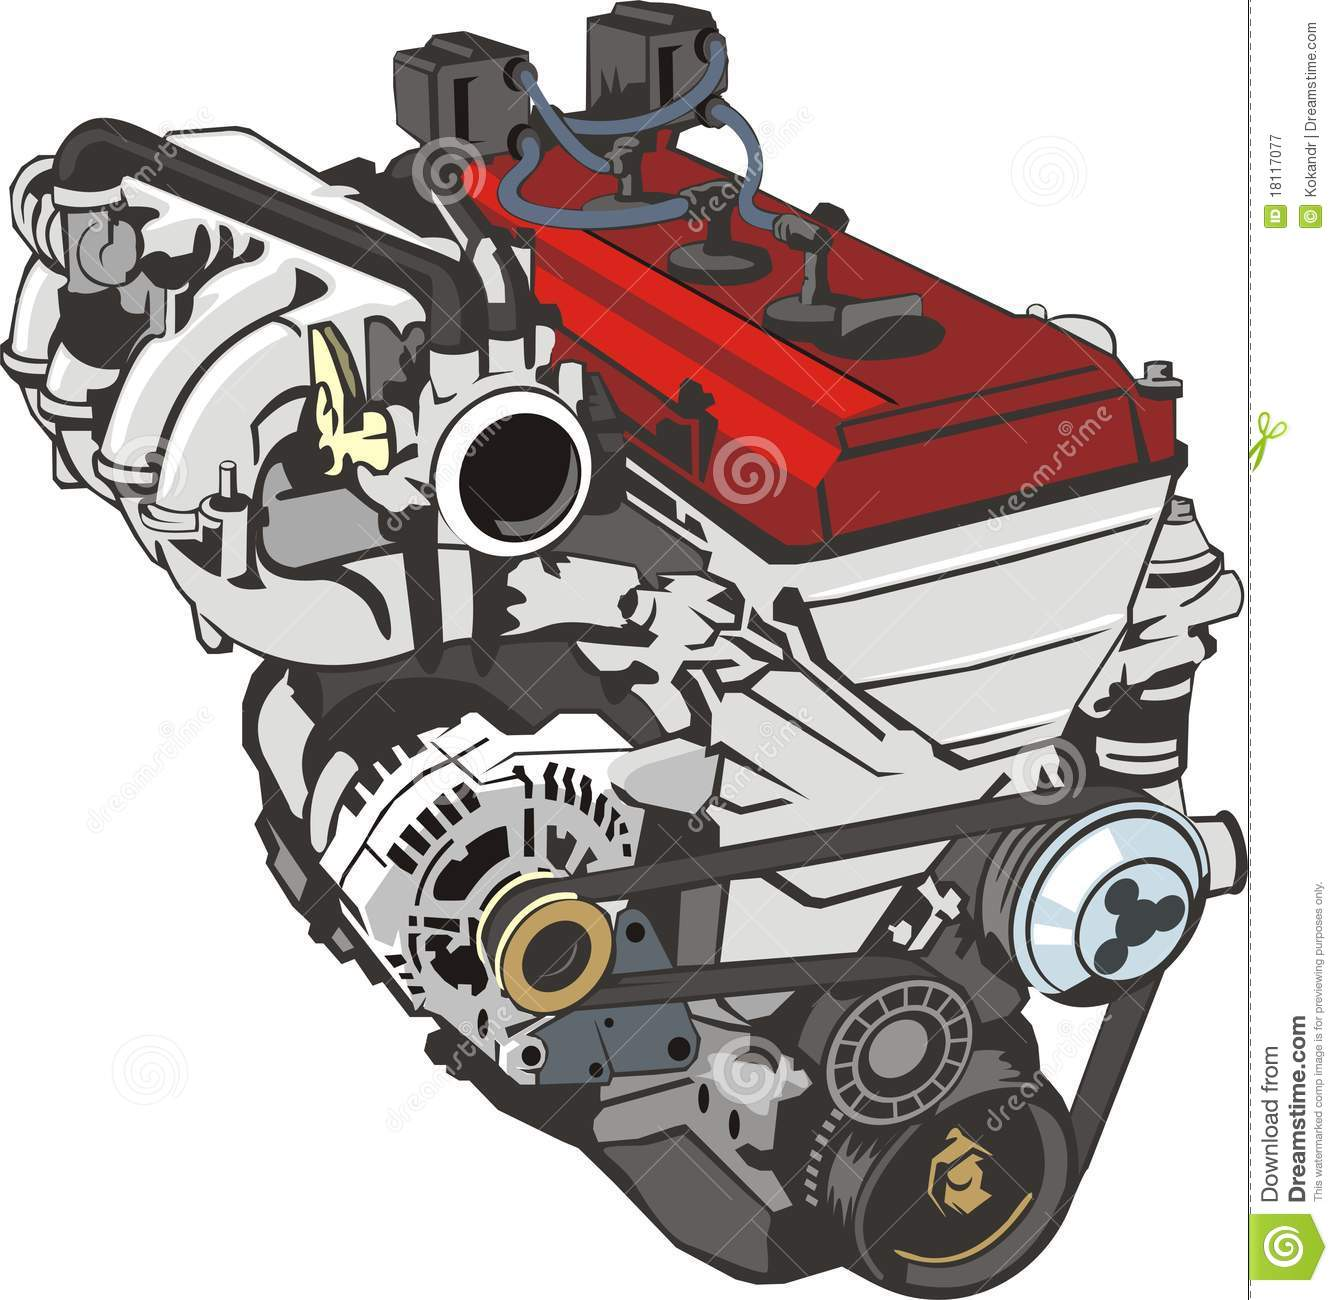 Engine clipart vehicle engine.  clipartlook